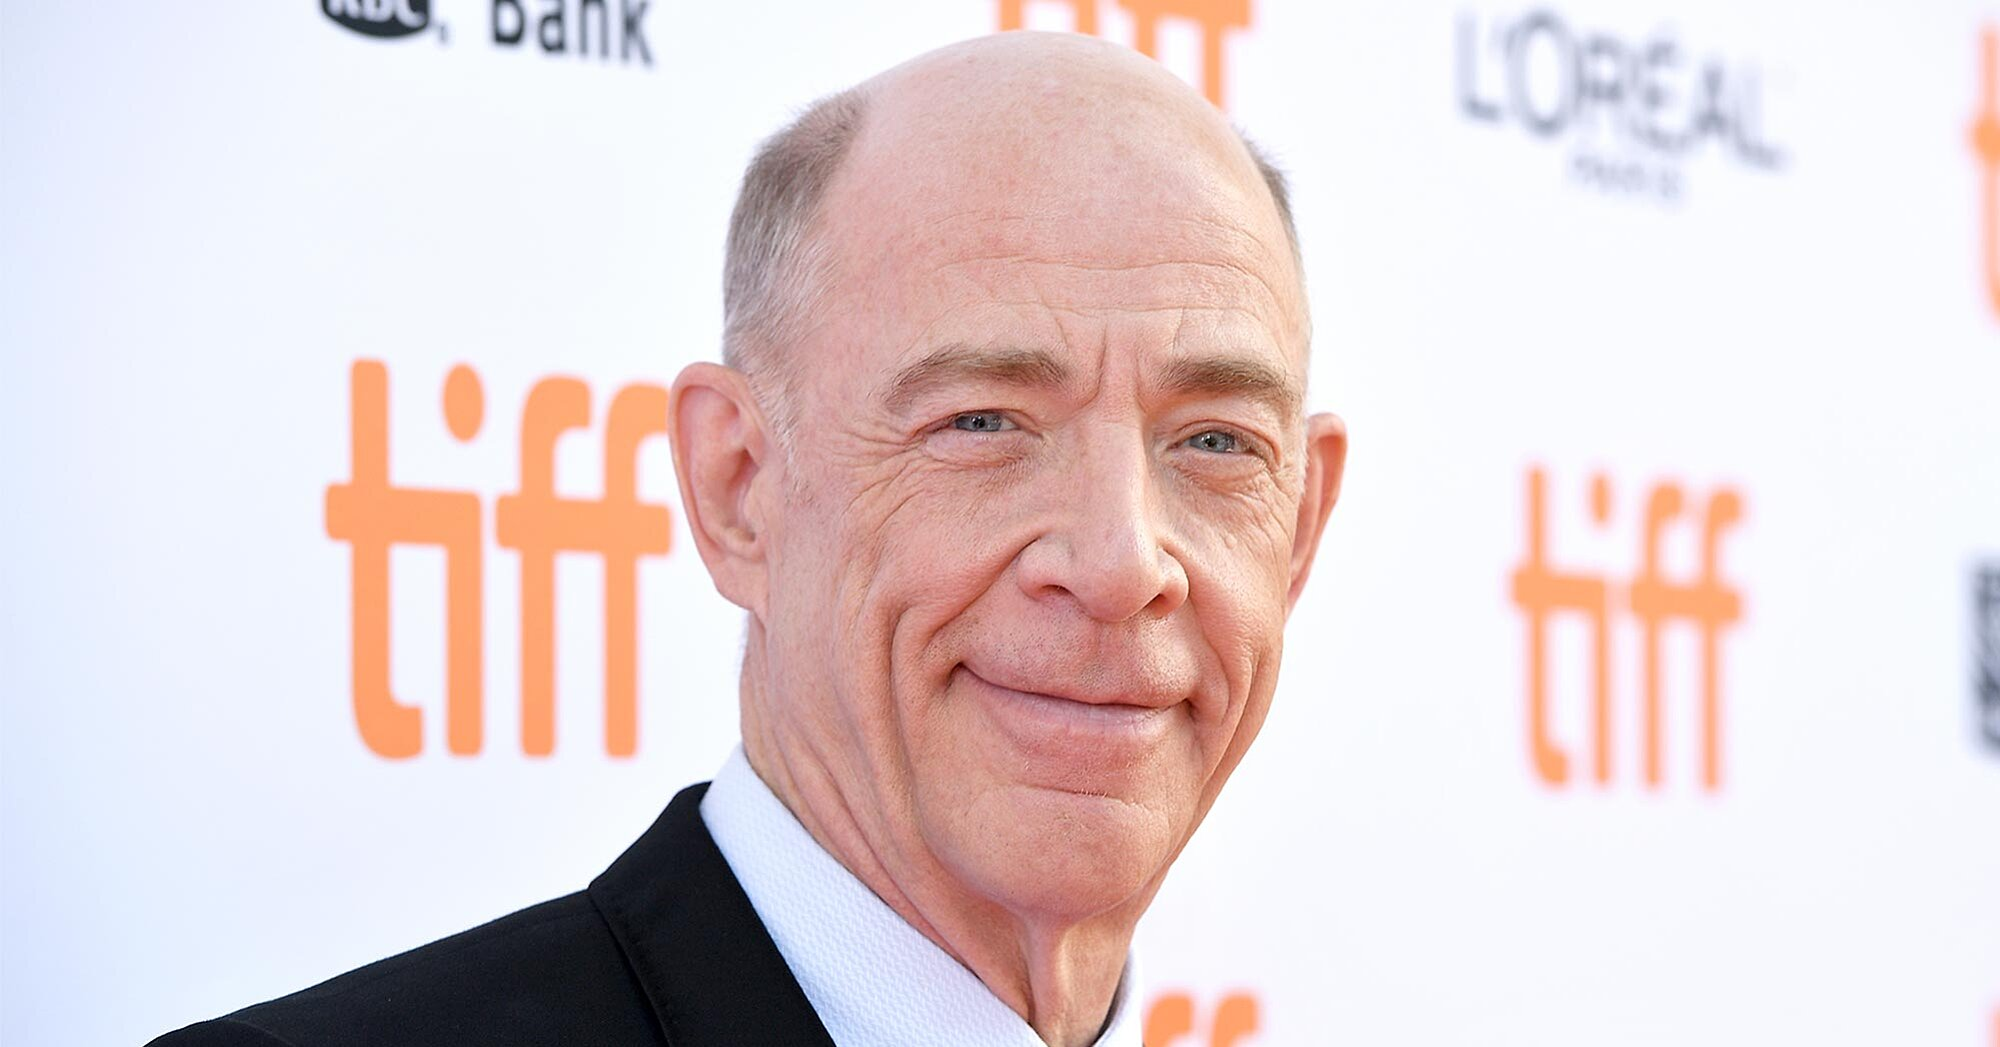 J.K. Simmons wants to play every famous Chris' dad after working with Chris Evans, Chris Pratt